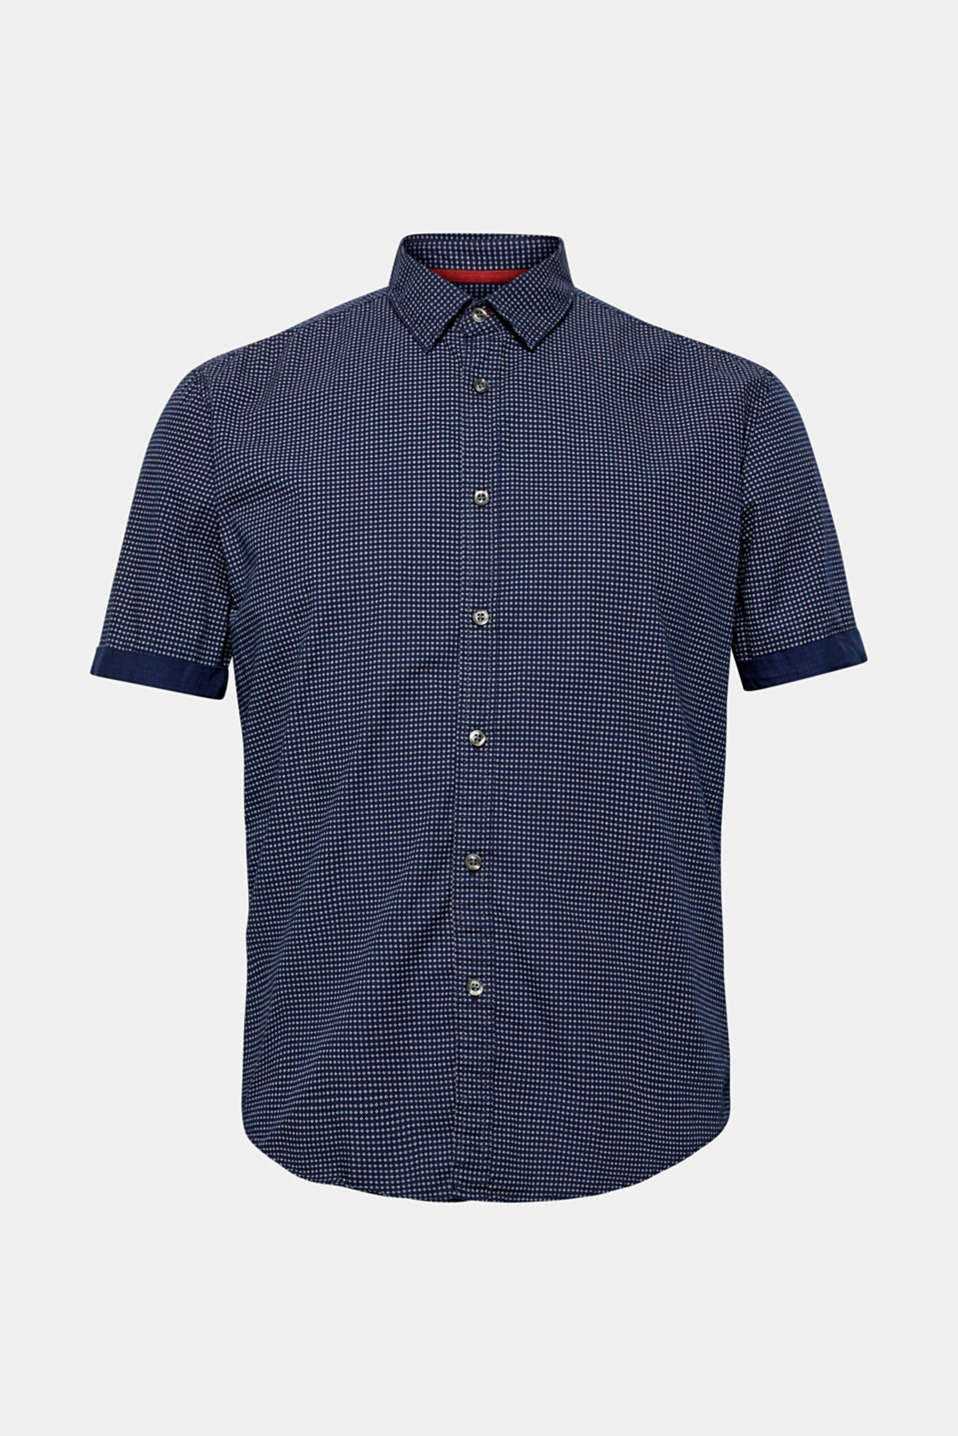 Shirts woven Slim fit, NAVY, detail image number 5